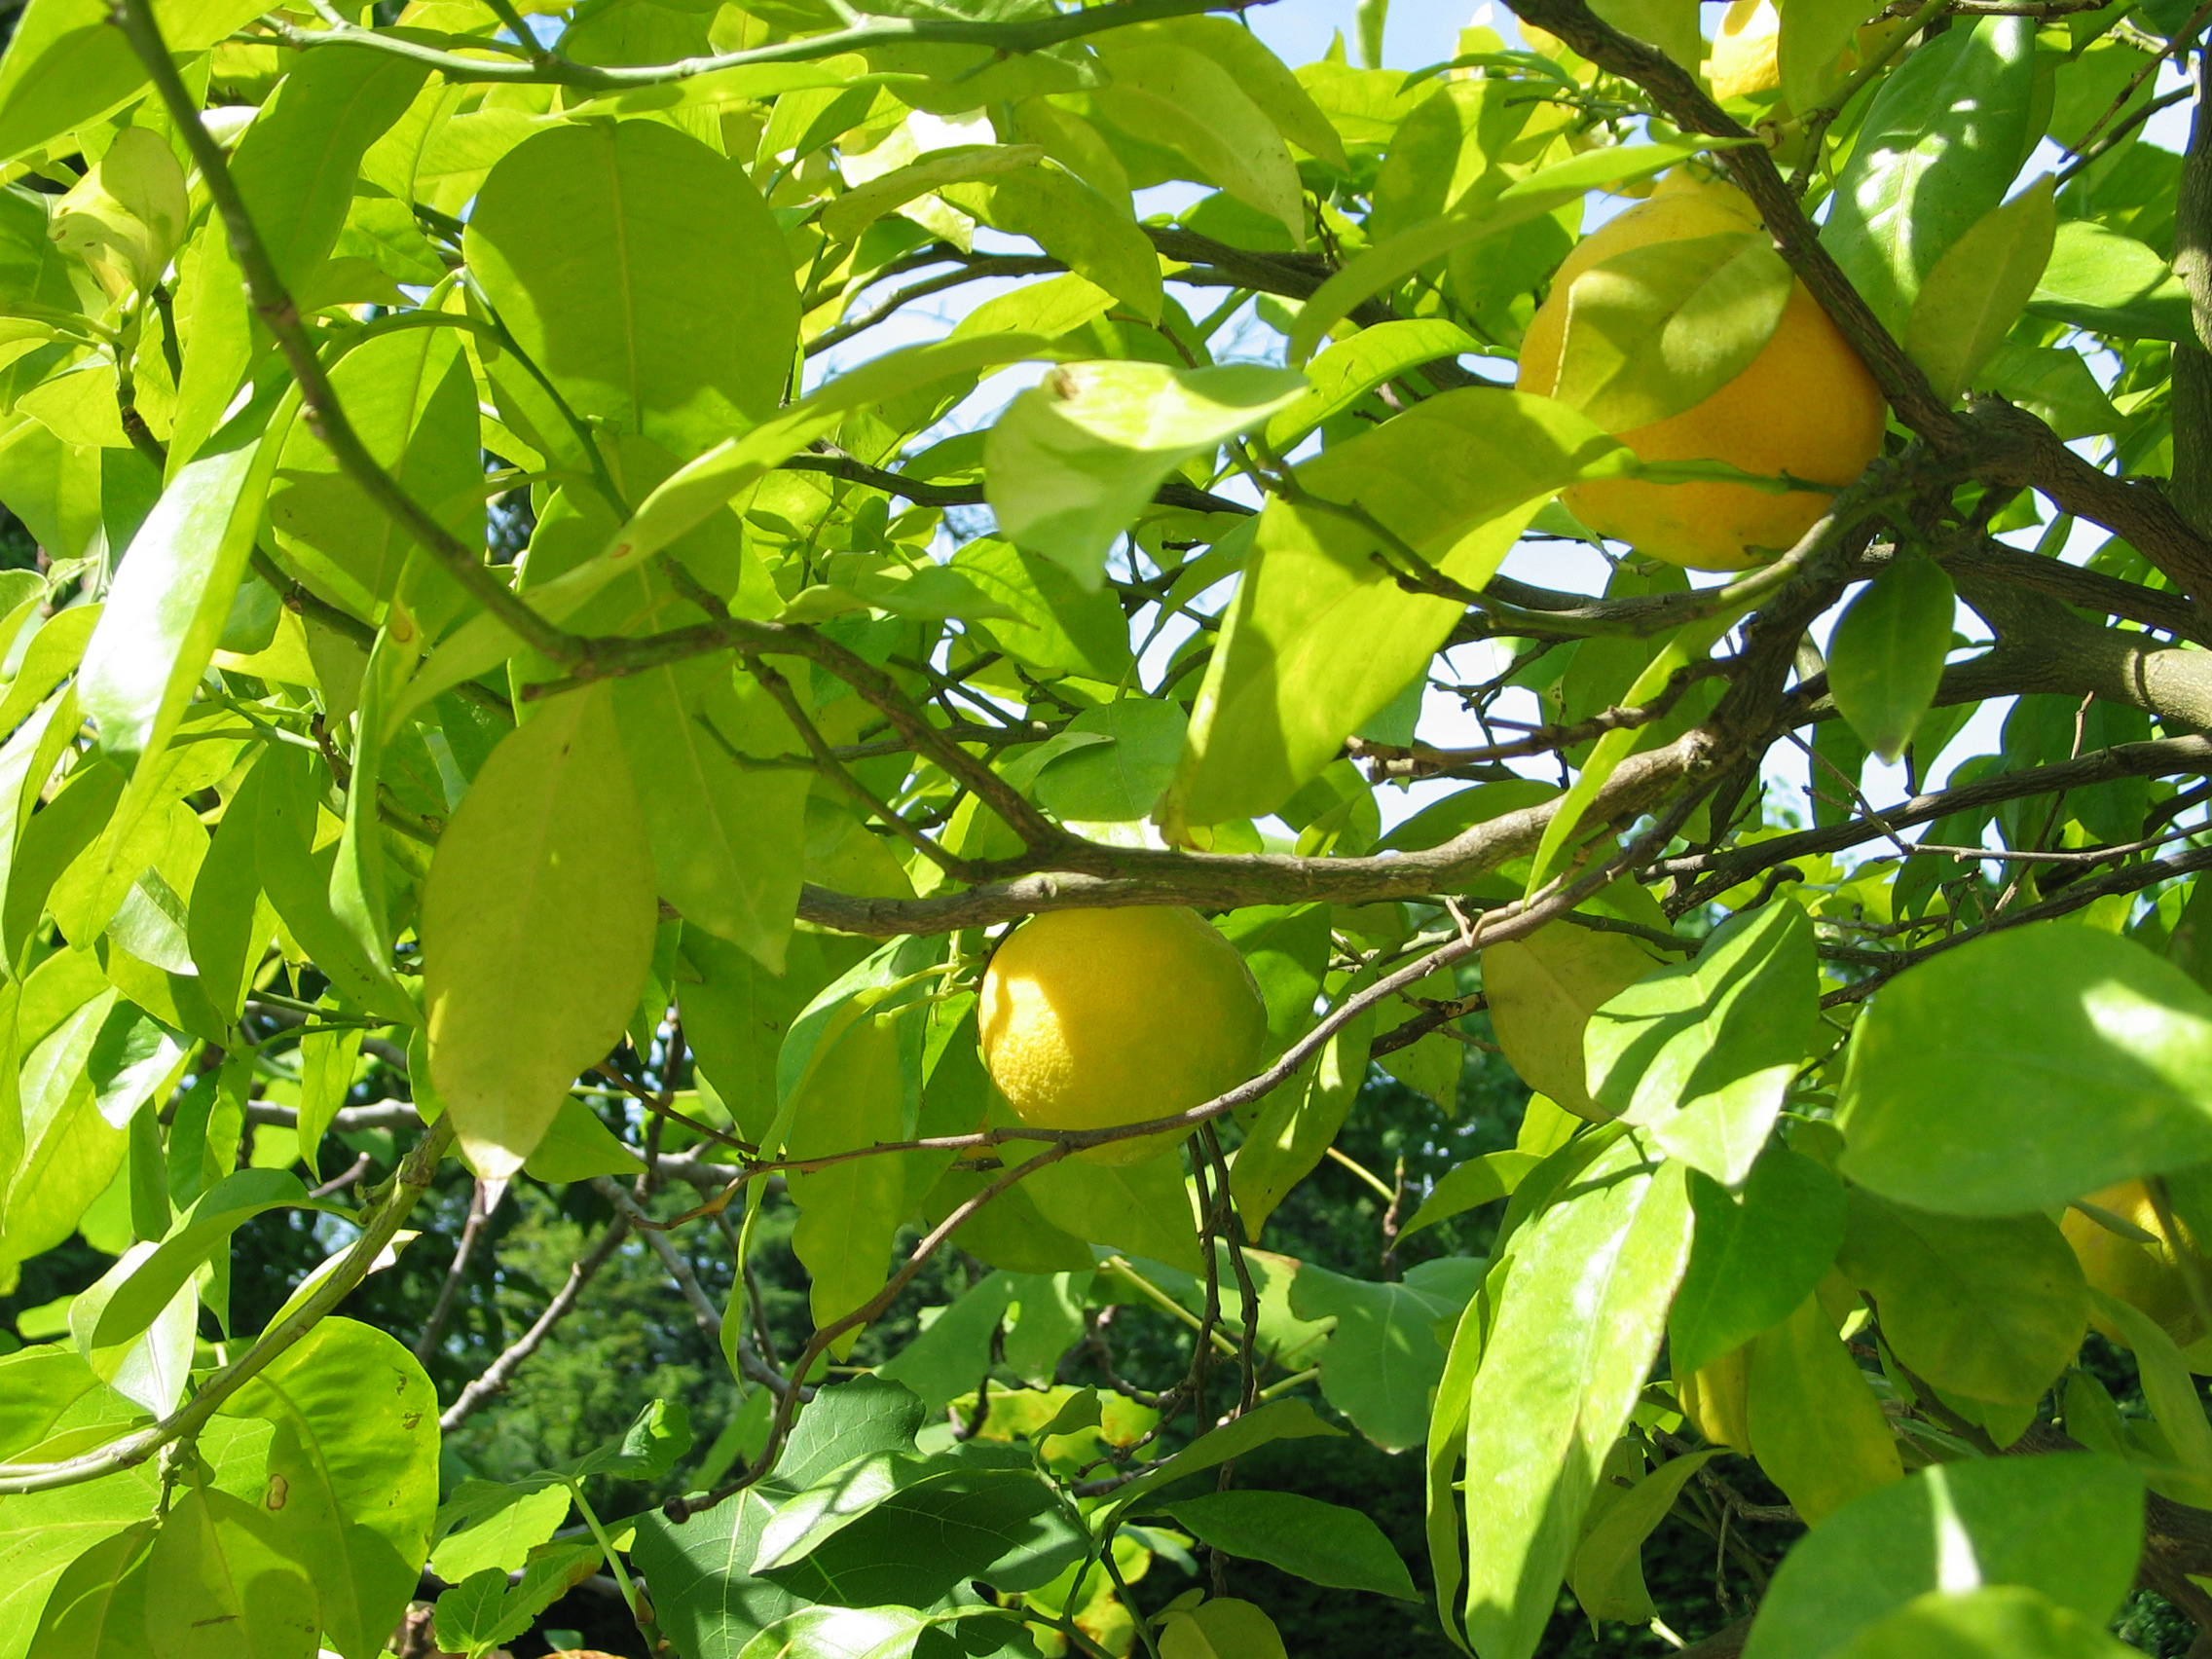 le citron, fruit du citronnier